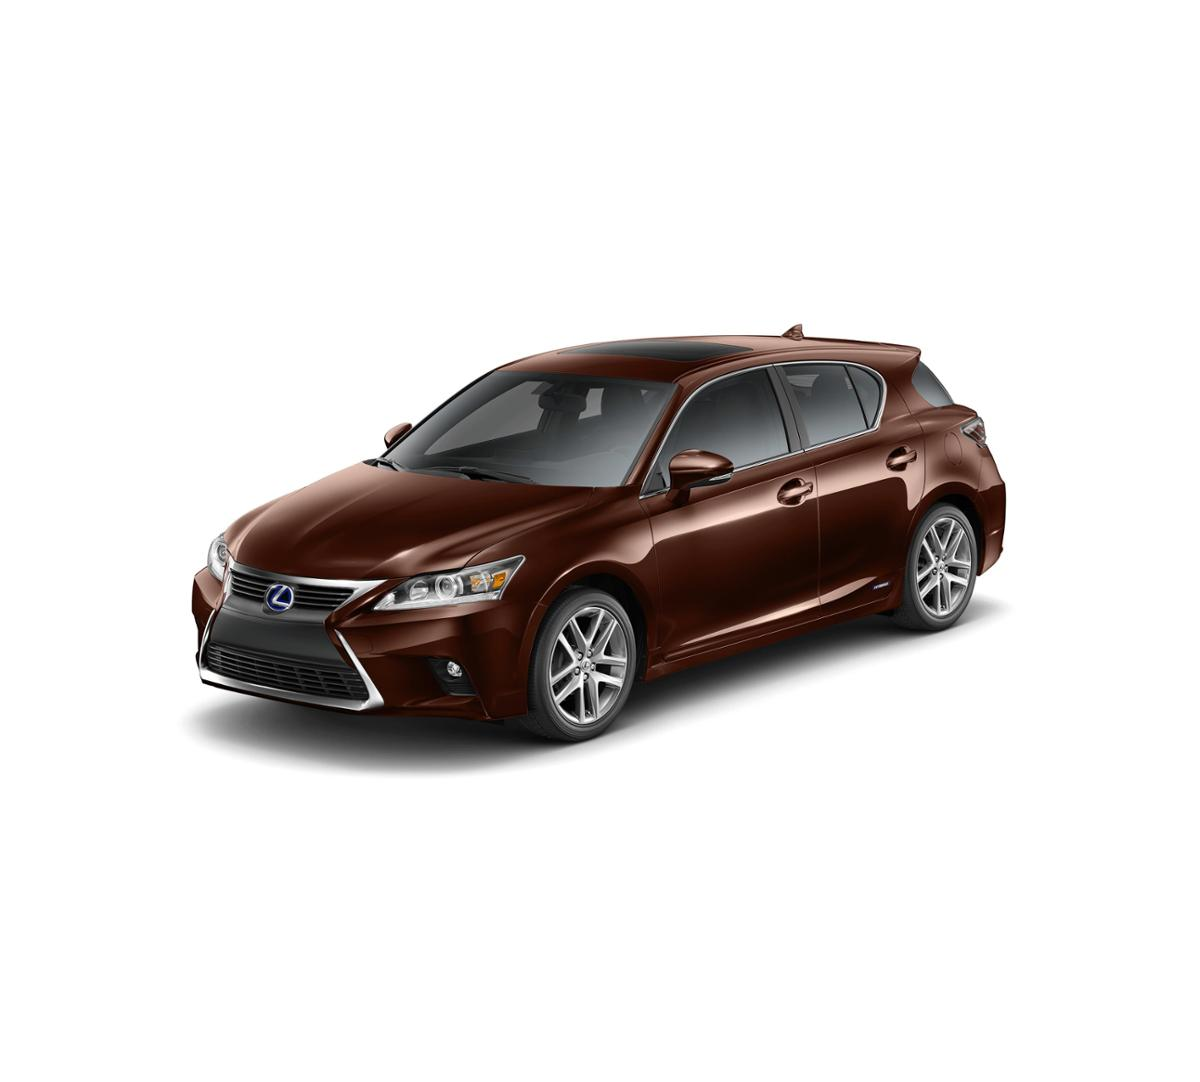 2017 Lexus CT 200h Vehicle Photo in Dallas, TX 75209